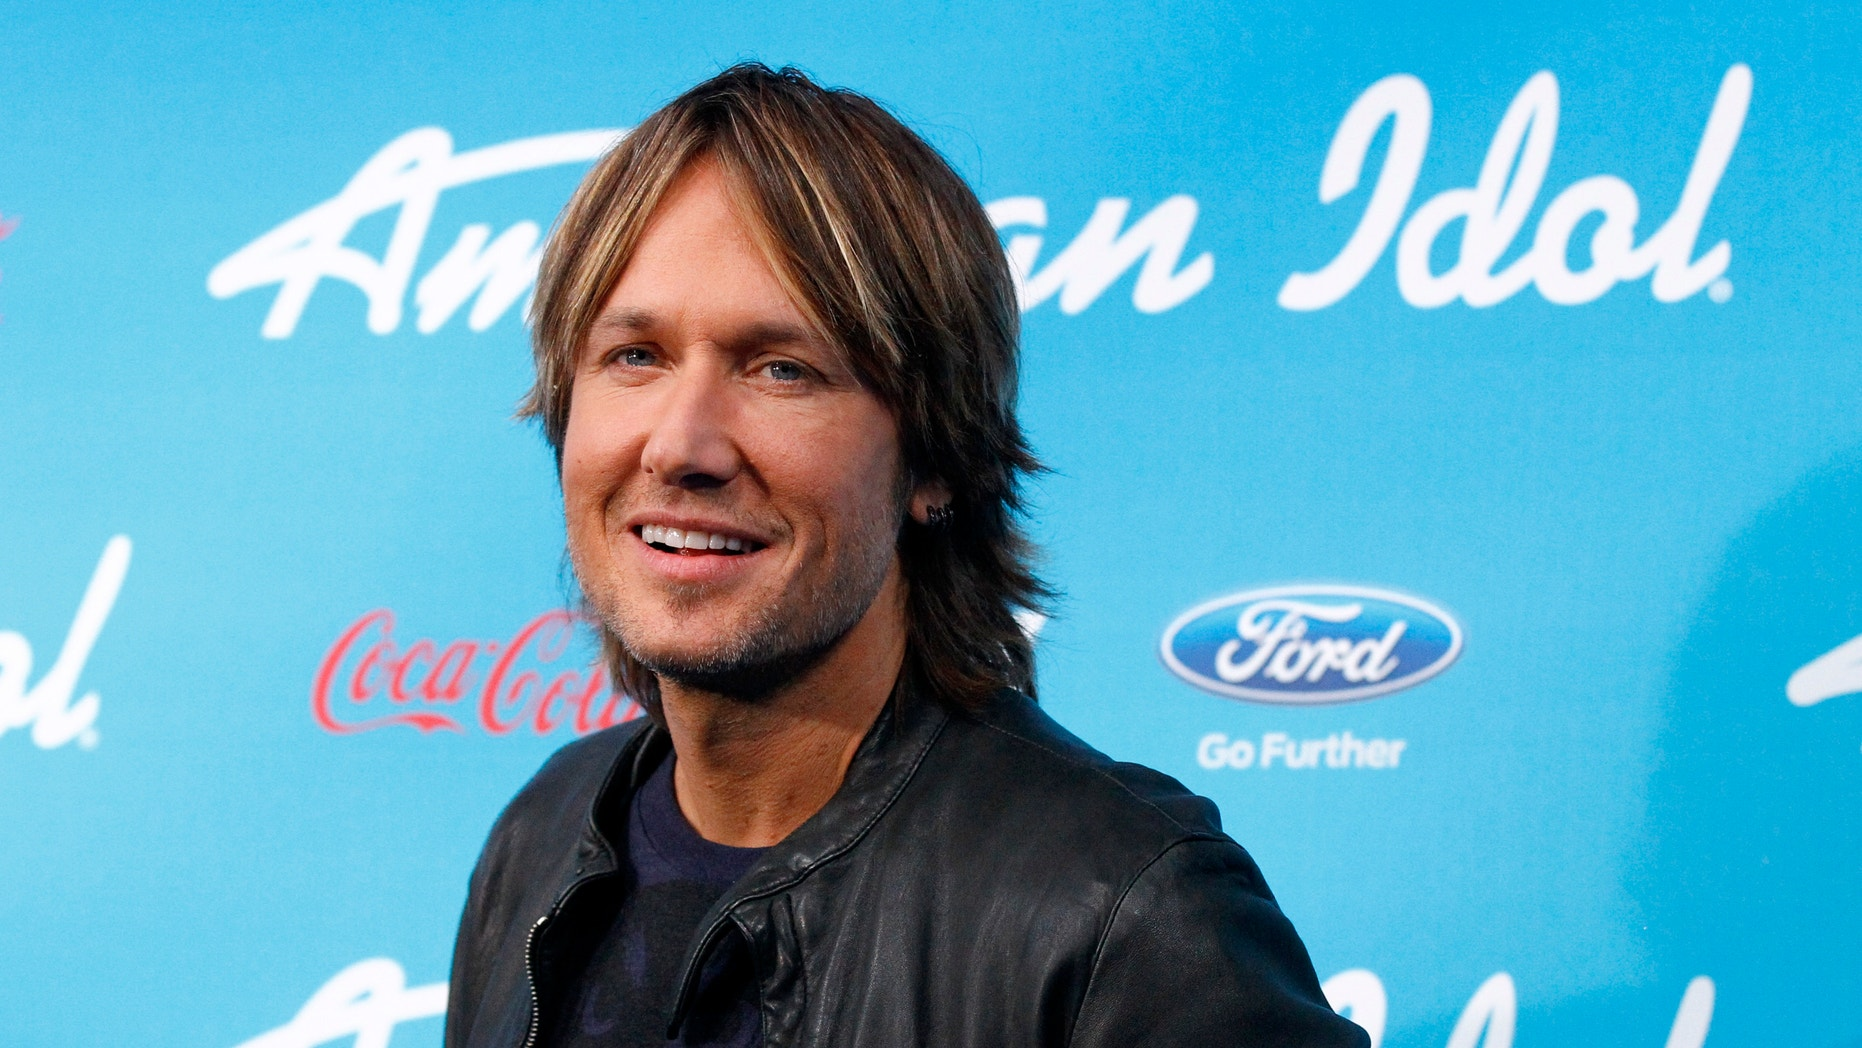 """Country singer and judge Keith Urban poses at the party for the finalists of the television show """"American Idol"""" in Los Angeles, California March 7, 2013."""